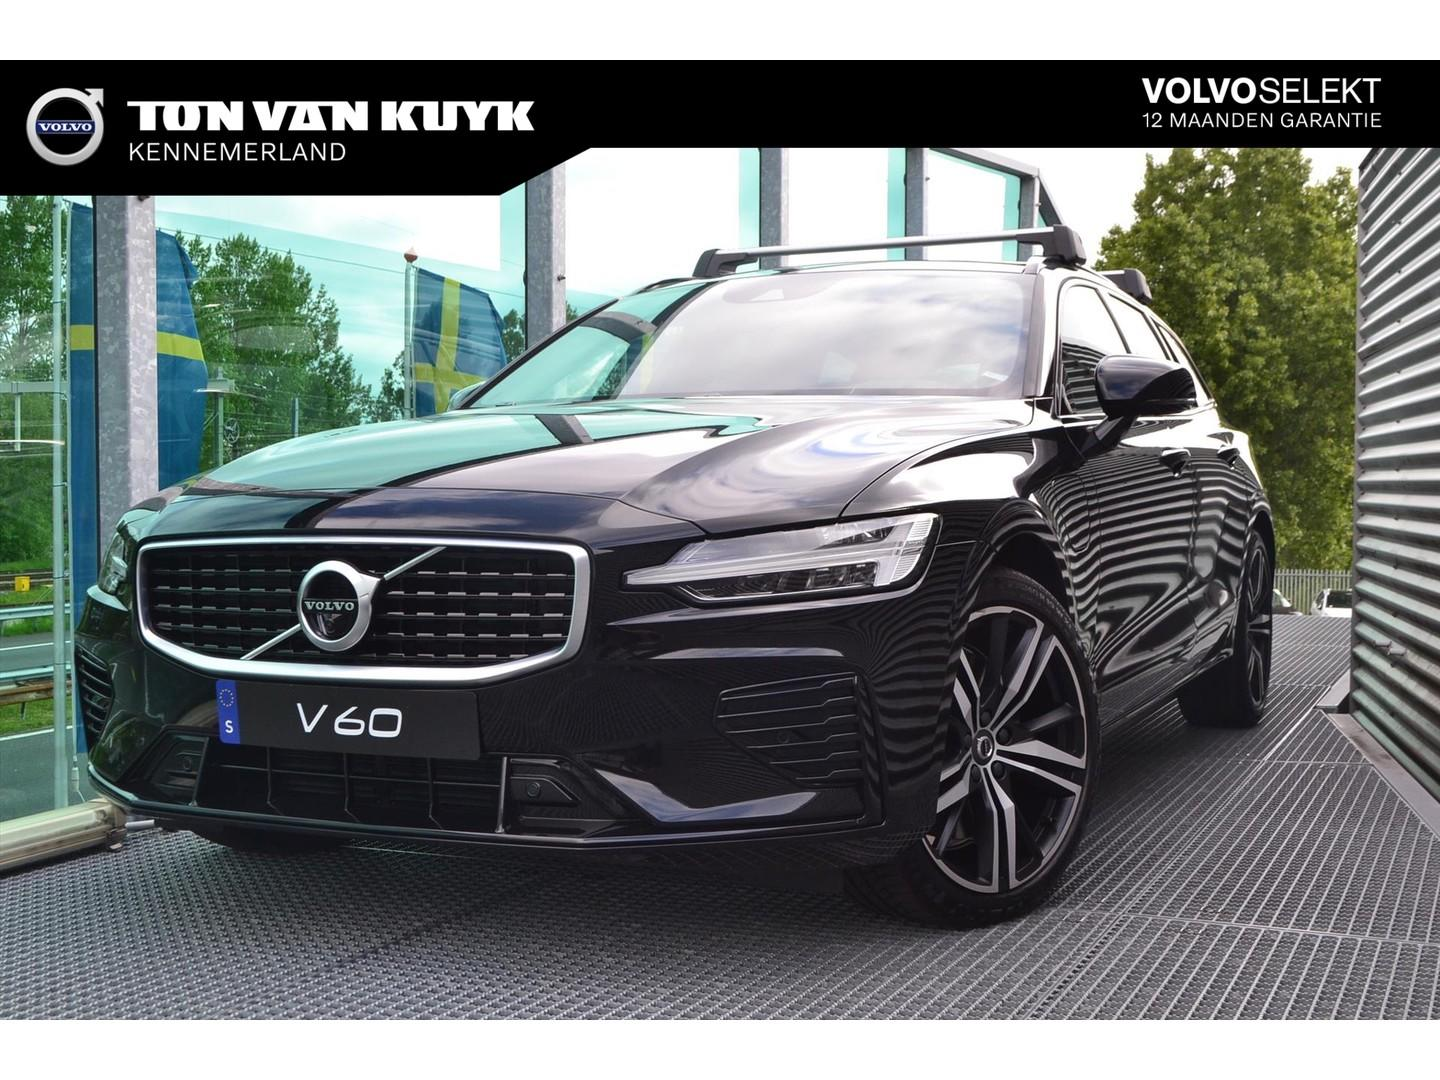 Volvo V60 New twin engine awd t8 r-design / luxury line / intellisafe